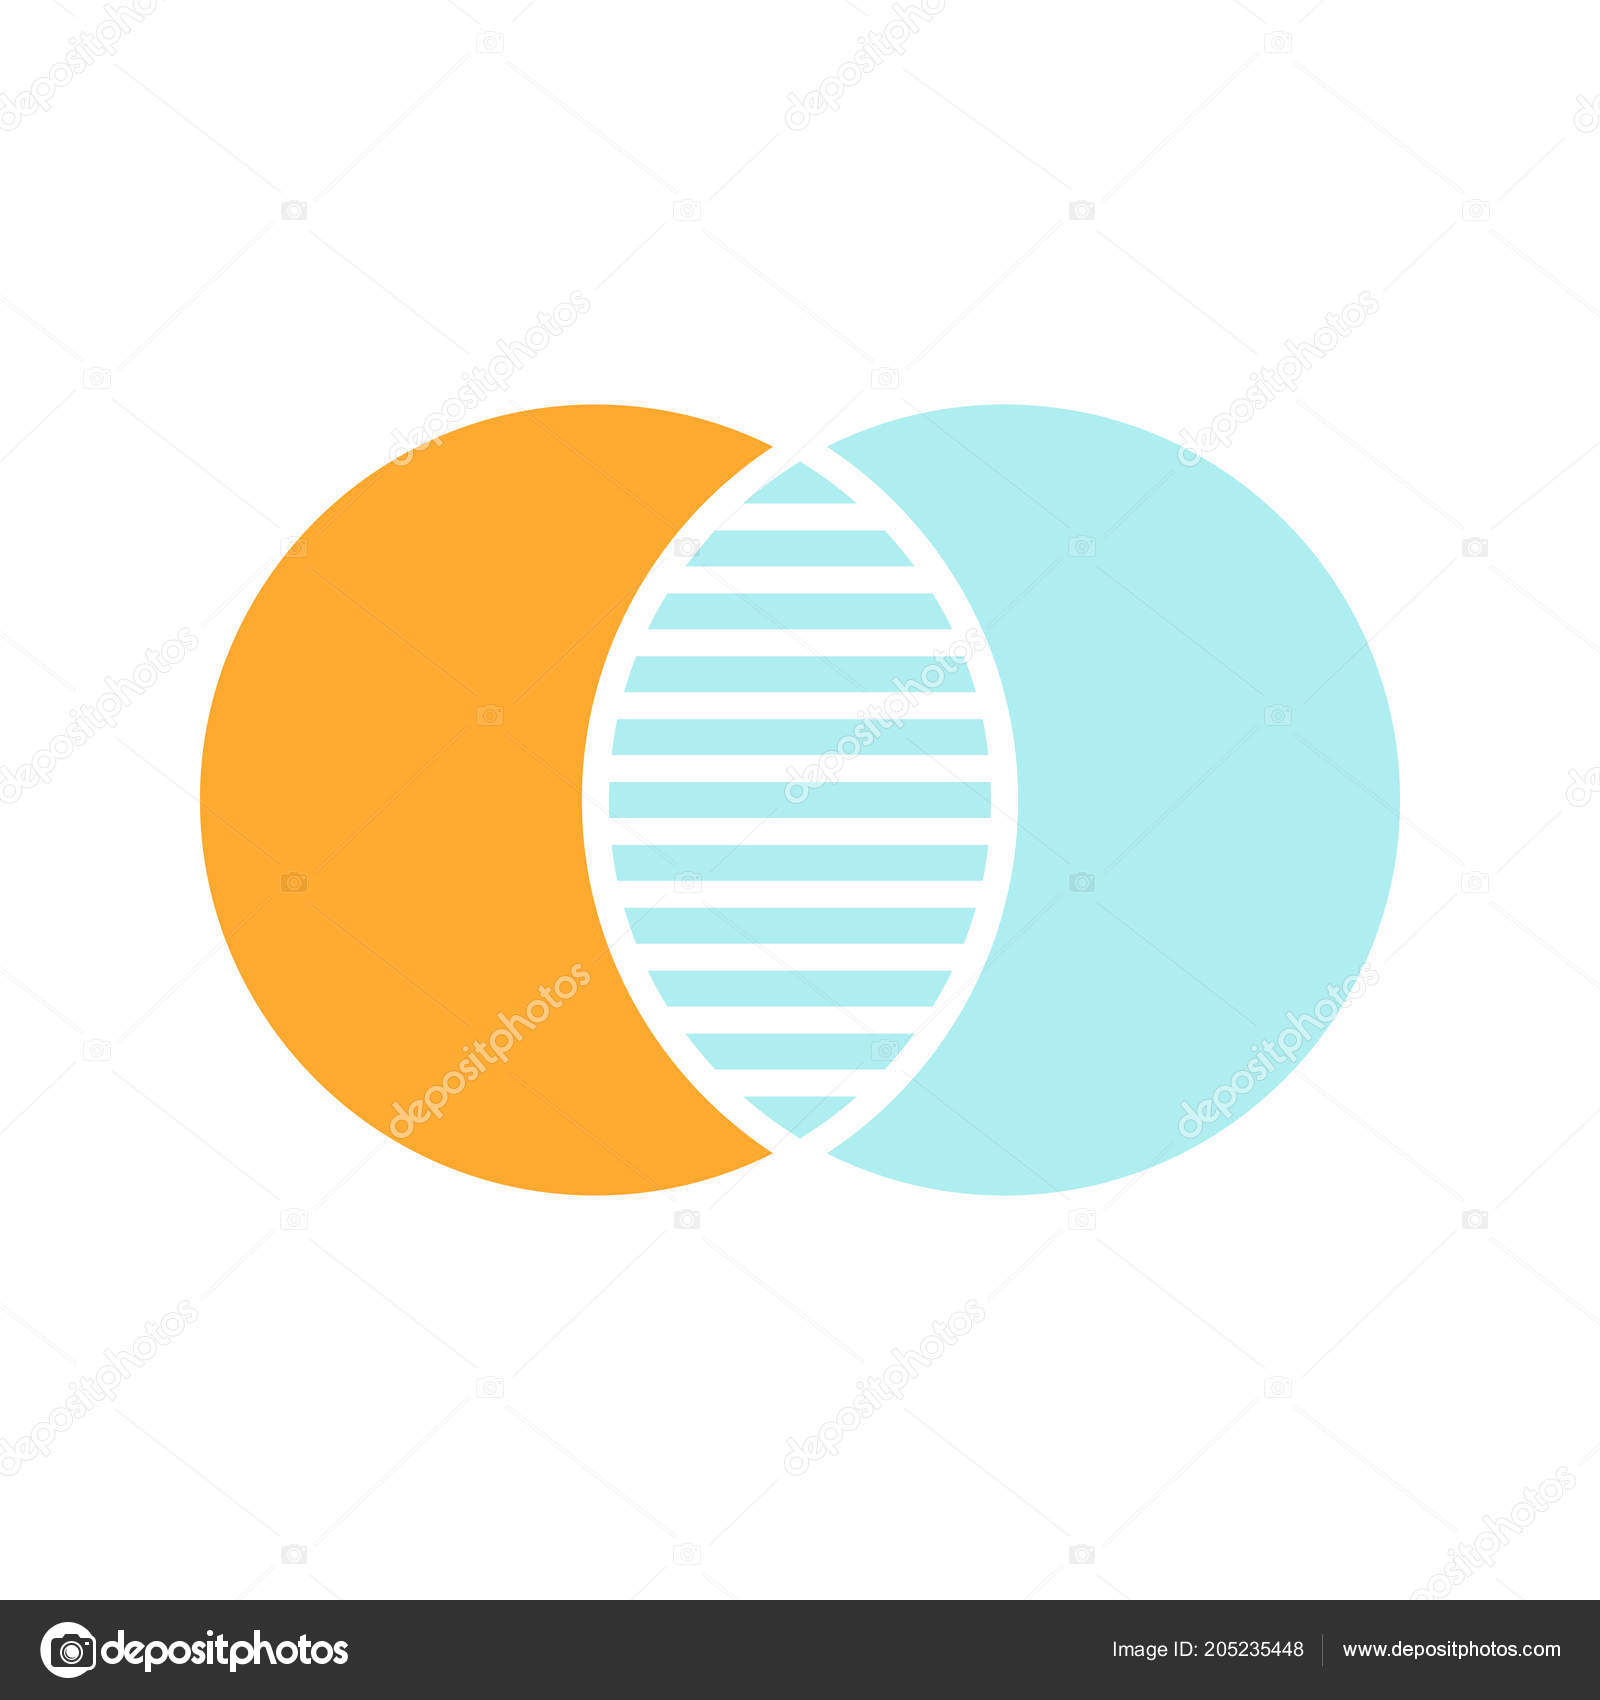 Discrete maths glyph color icon overlapping circles intersection overlapping circles intersection venn diagram silhouette symbol on white background with no outline negative space vector illustration vector by bsd ccuart Choice Image